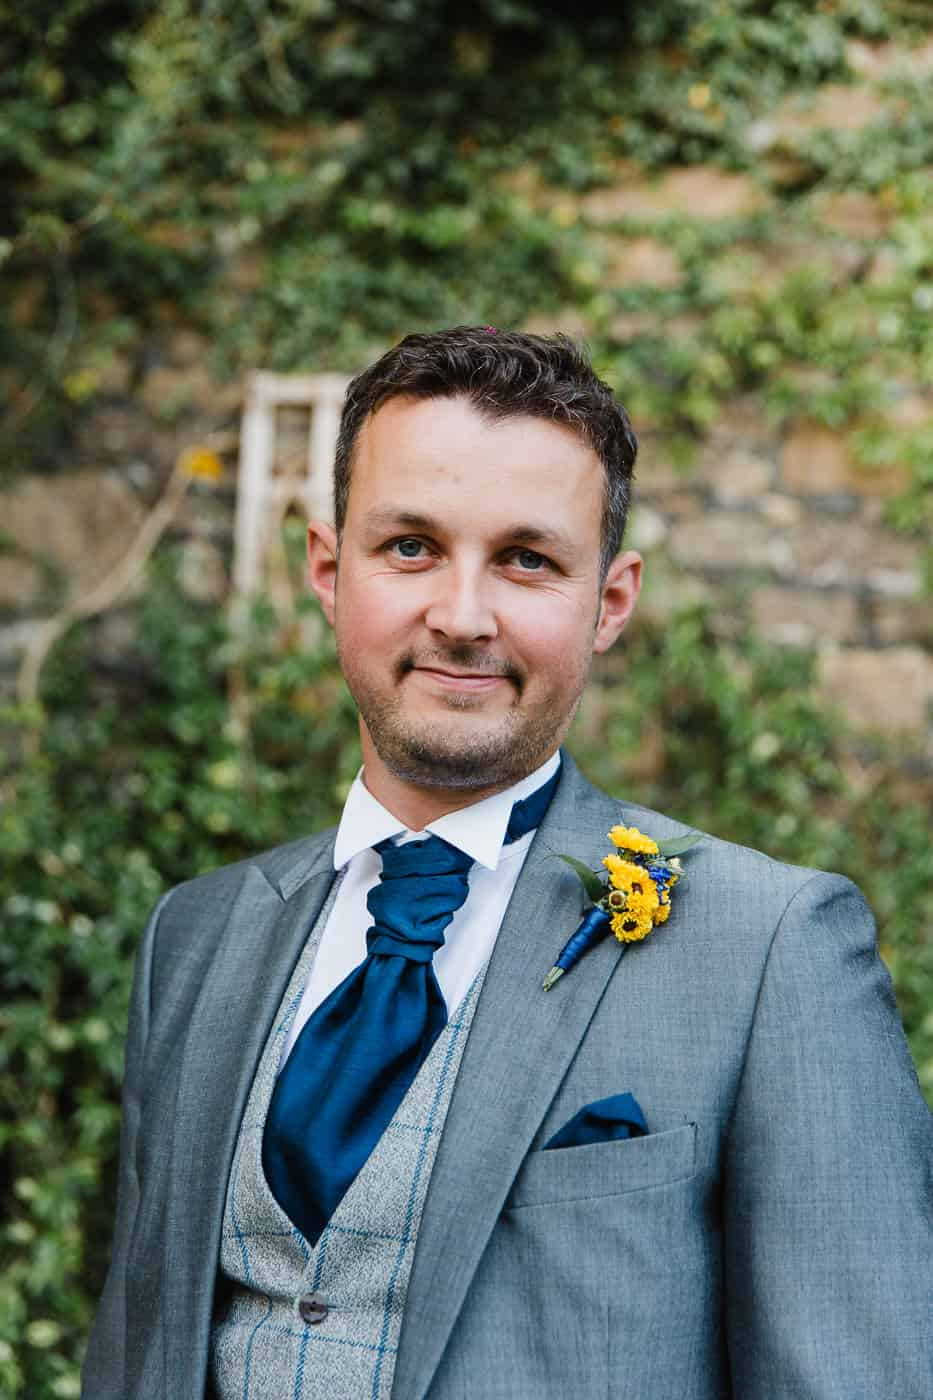 South Wales Wedding Photographer Groom Portrait